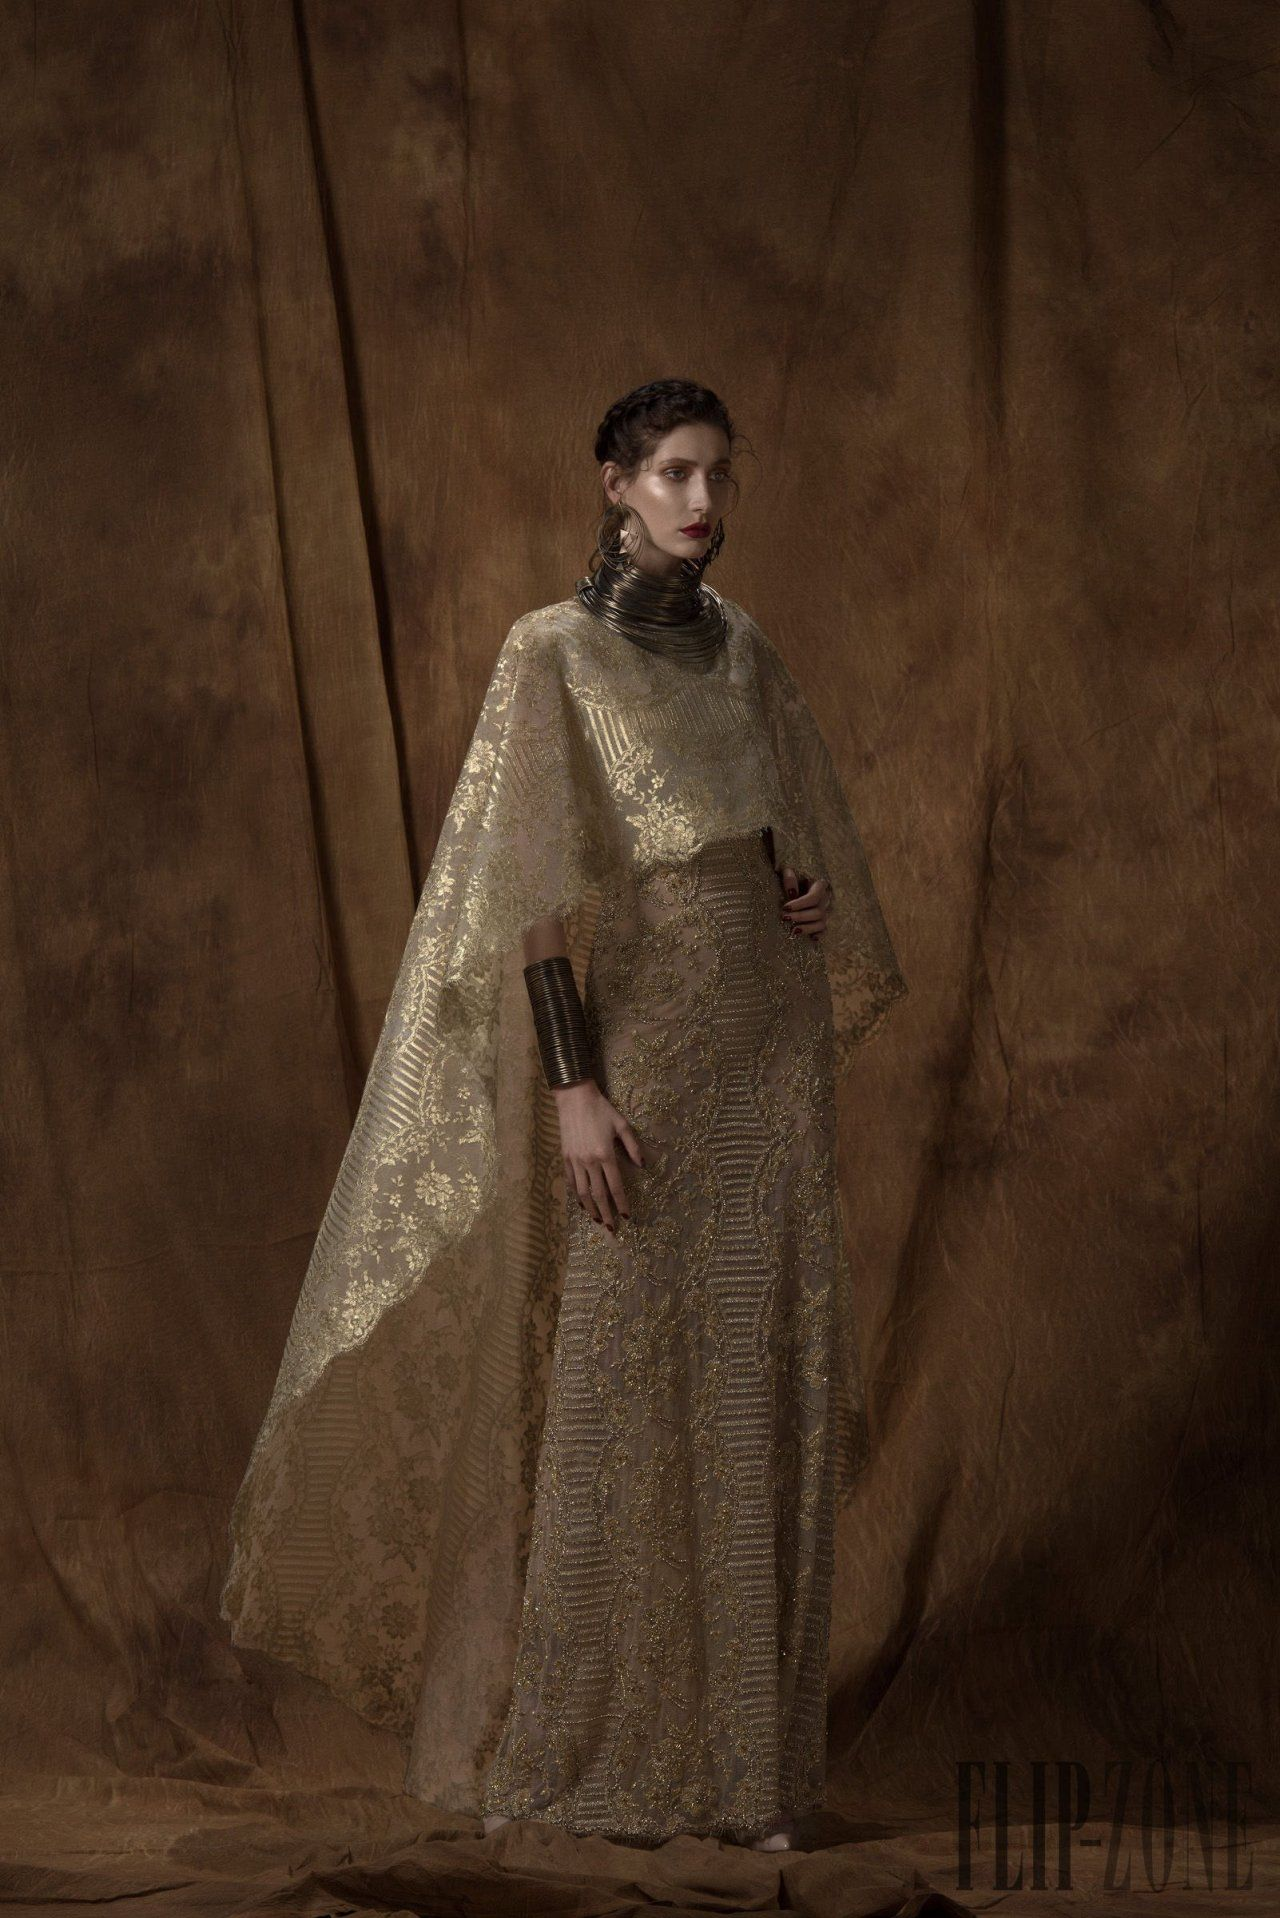 Myrish lace gown the Queen of Meereen would wear, saiid